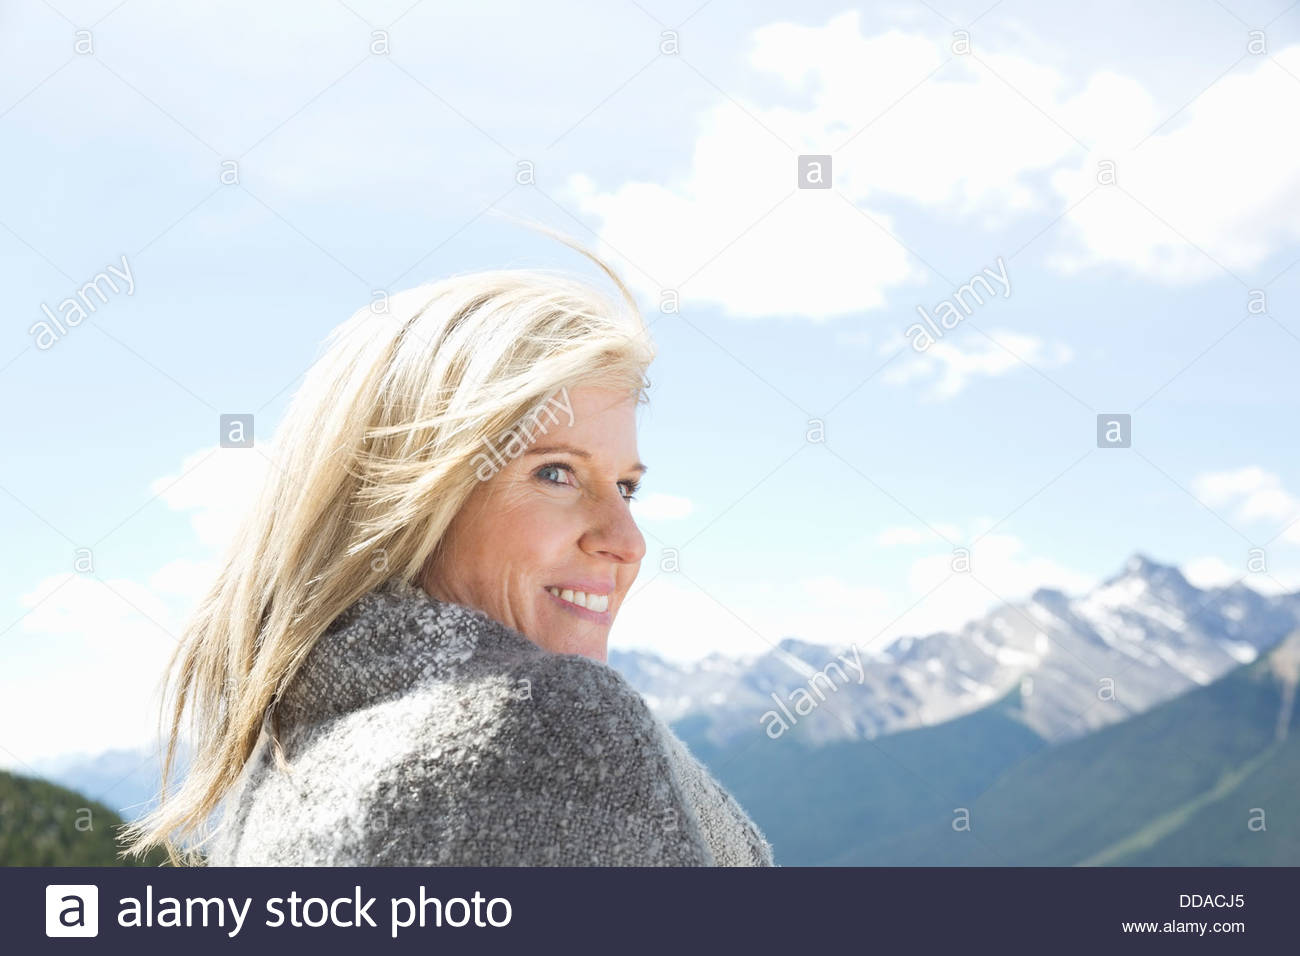 Woman wrapped in blanket against mountains - Stock Image